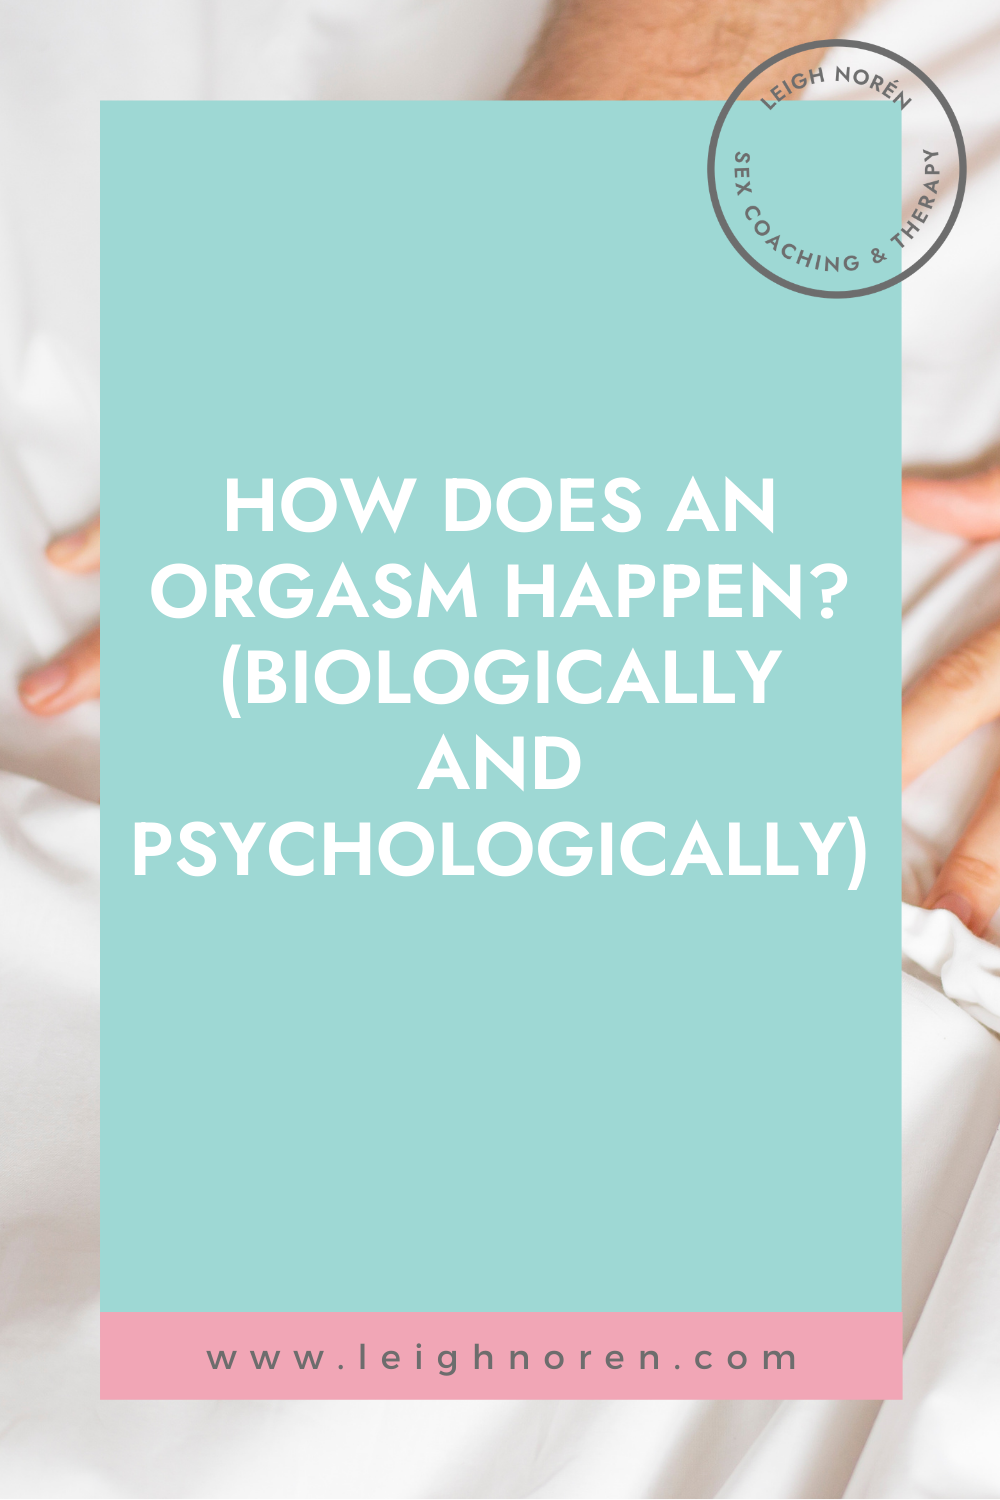 How Does an Orgasm Happen? (Biologically and Psychologically)